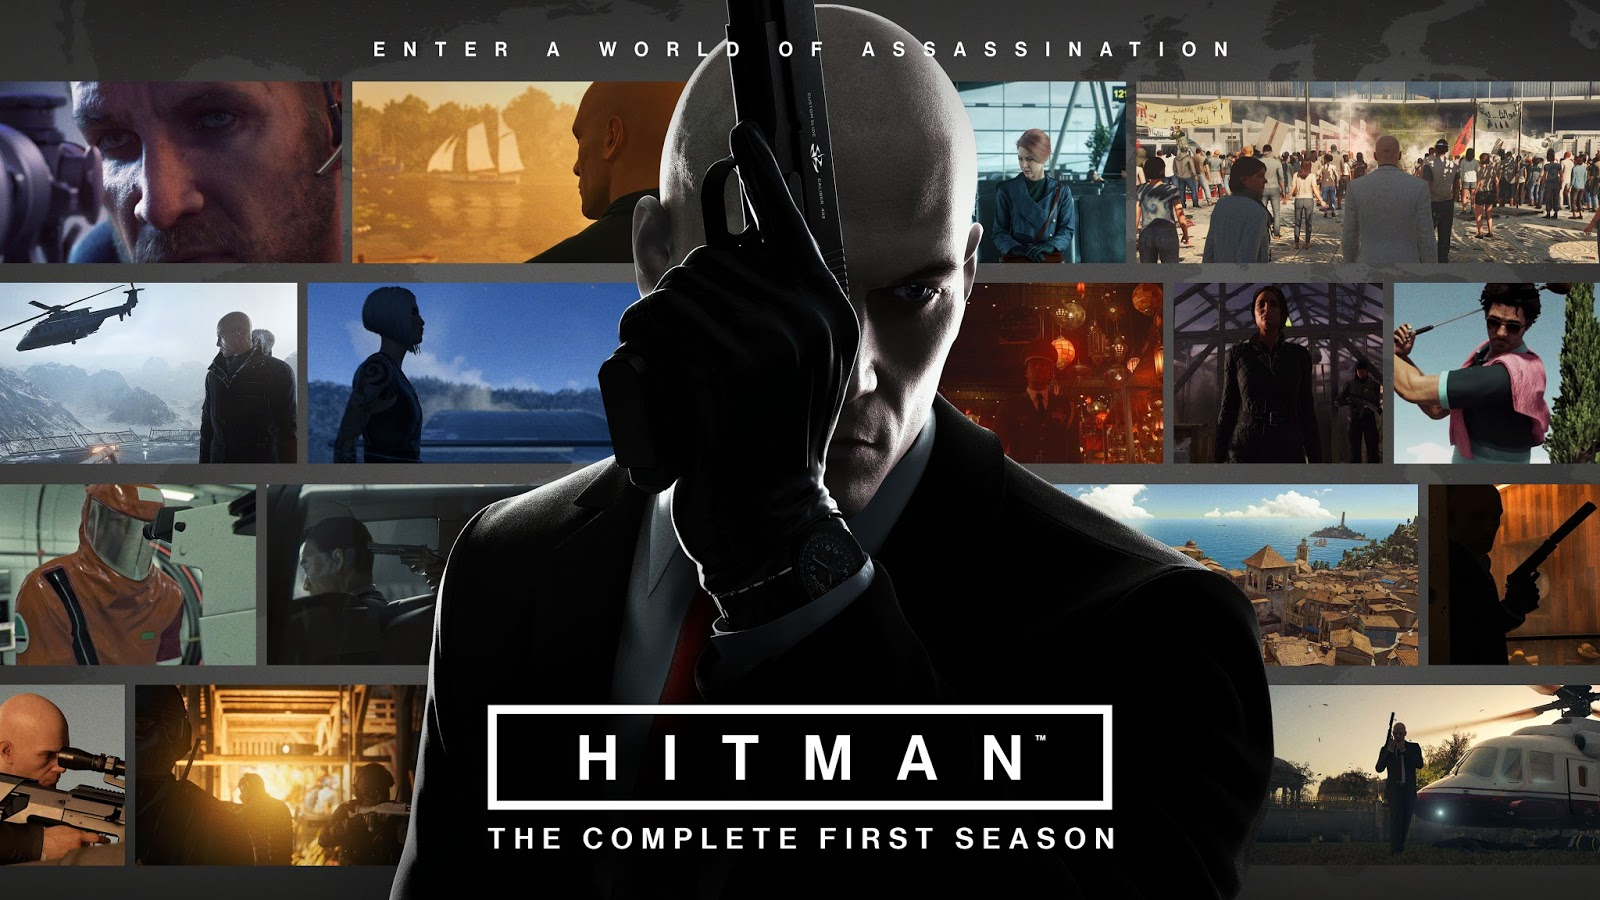 PS Plus subscribers in February 2019 can enjoy playing Hitman The Complete First Season for free